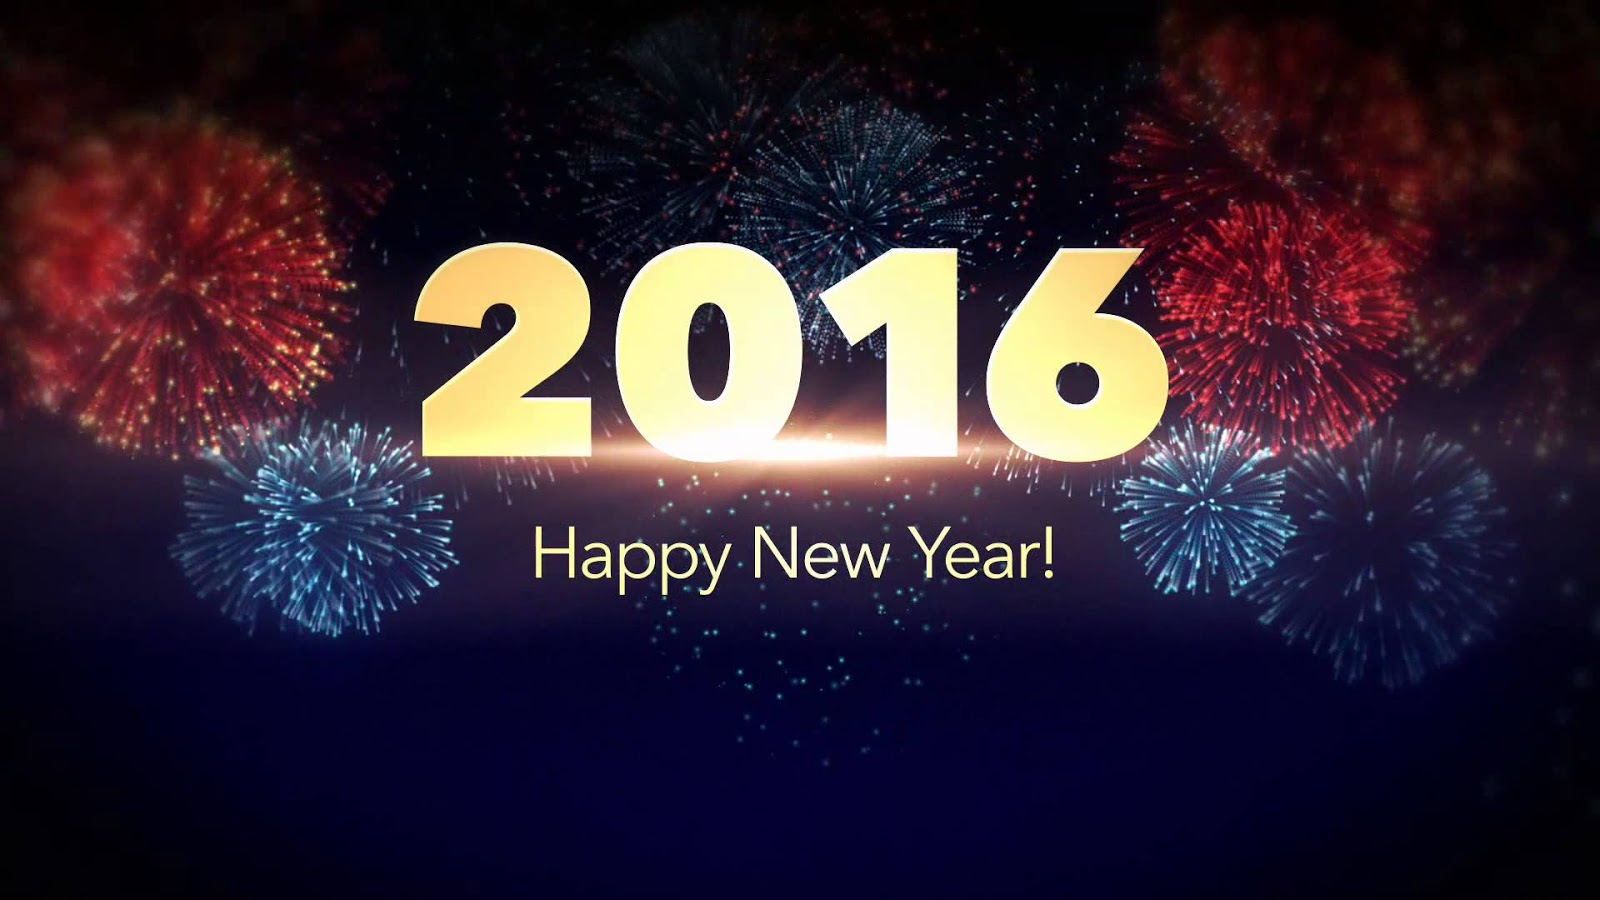 New Year 2016 Message